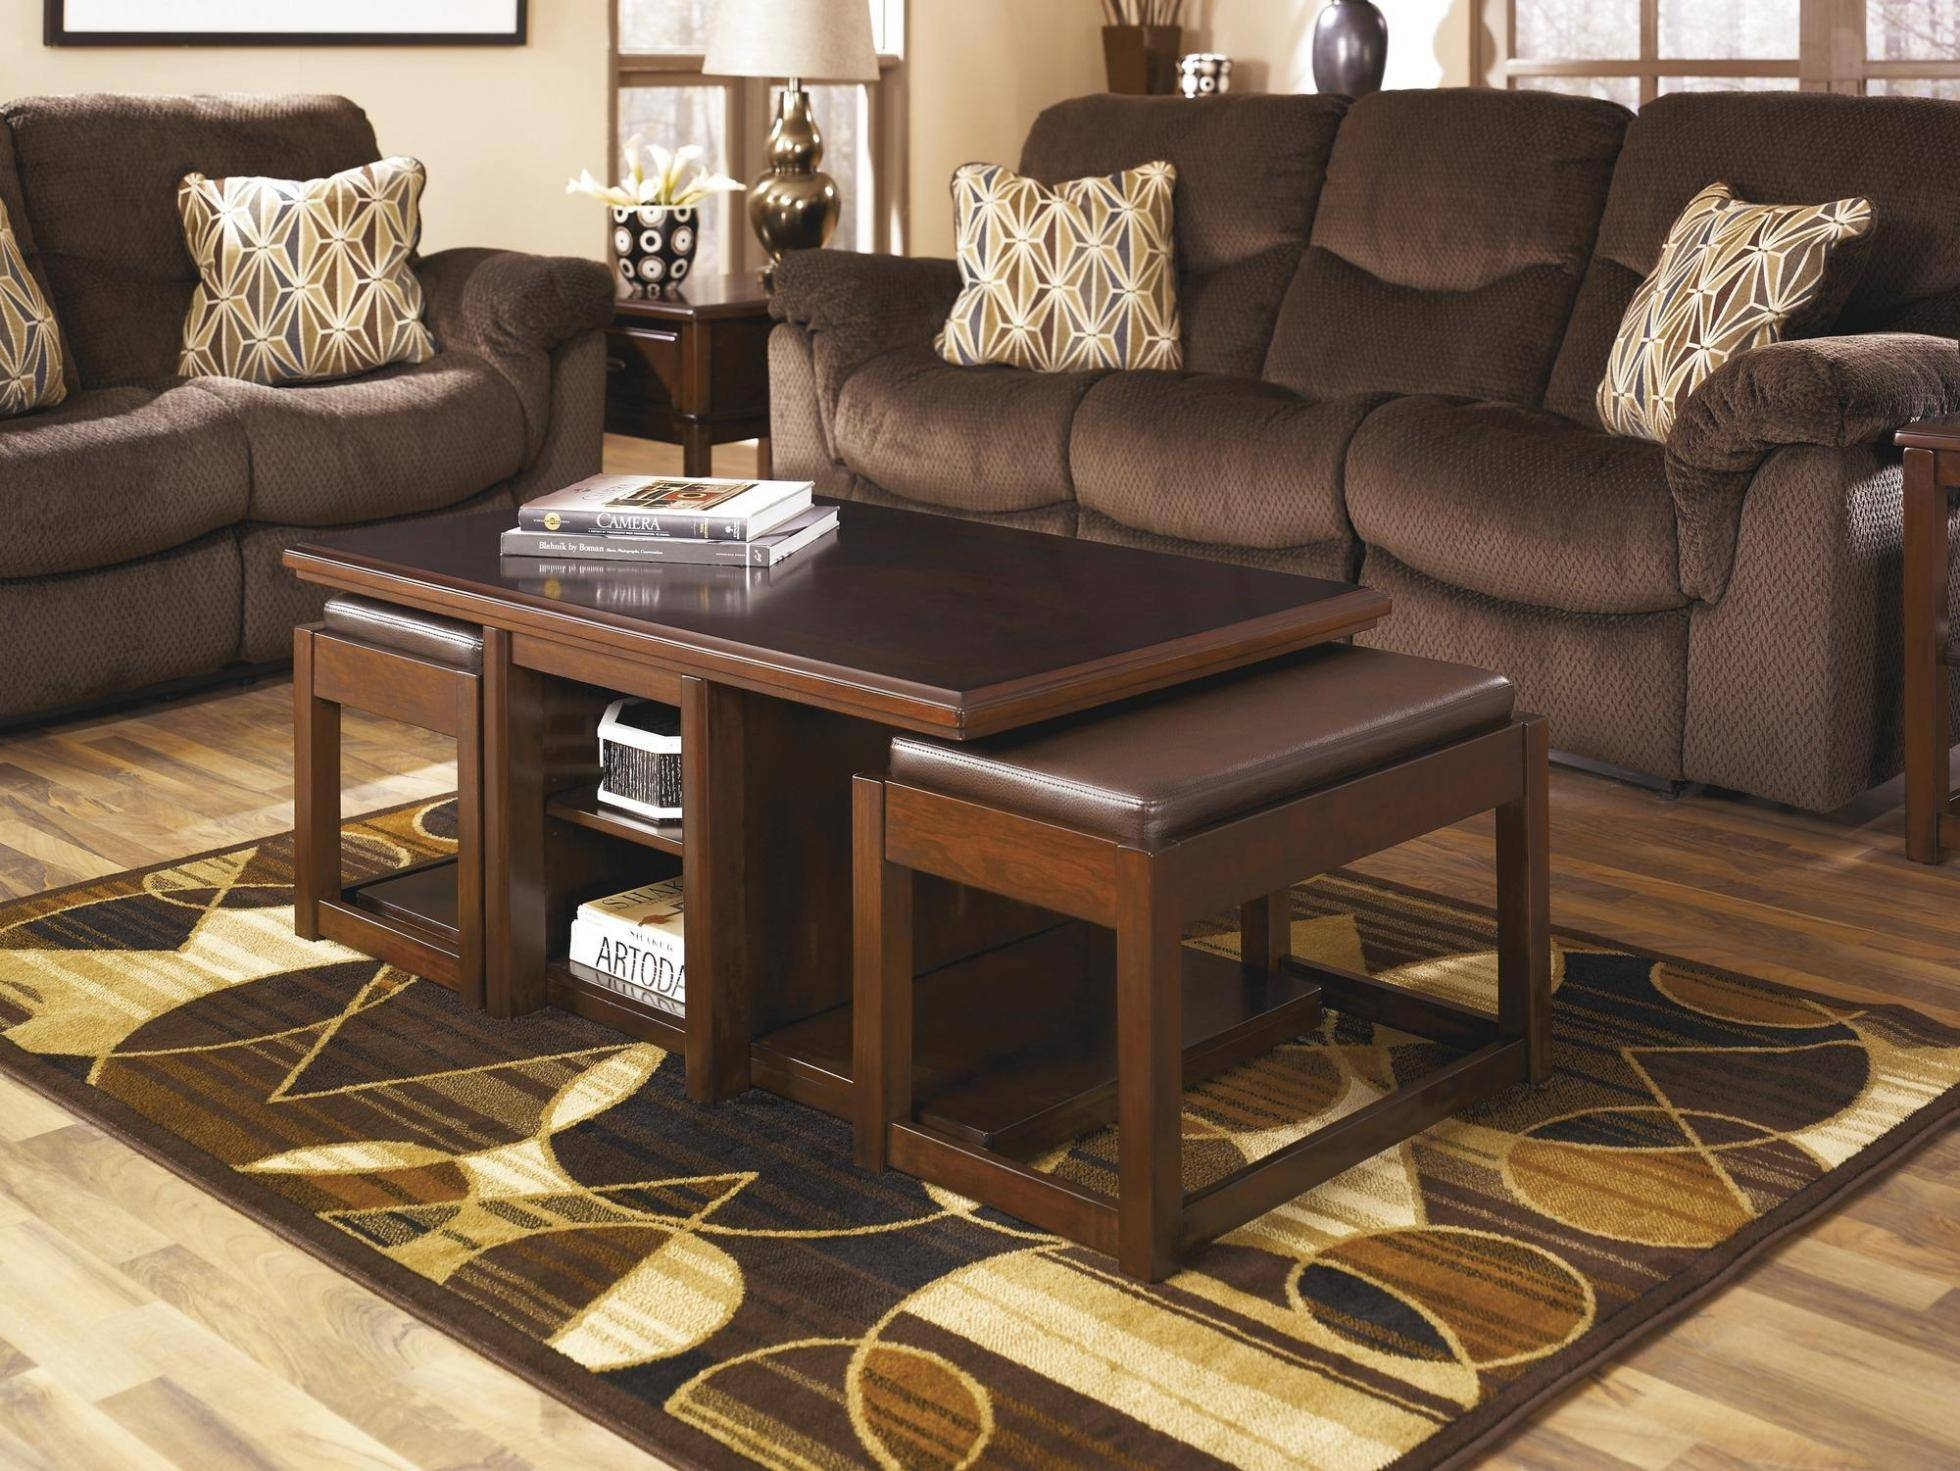 Furniture: Luxury Coffee Table With Stools For Living Room with Coffee Tables With Seating and Storage (Image 14 of 30)